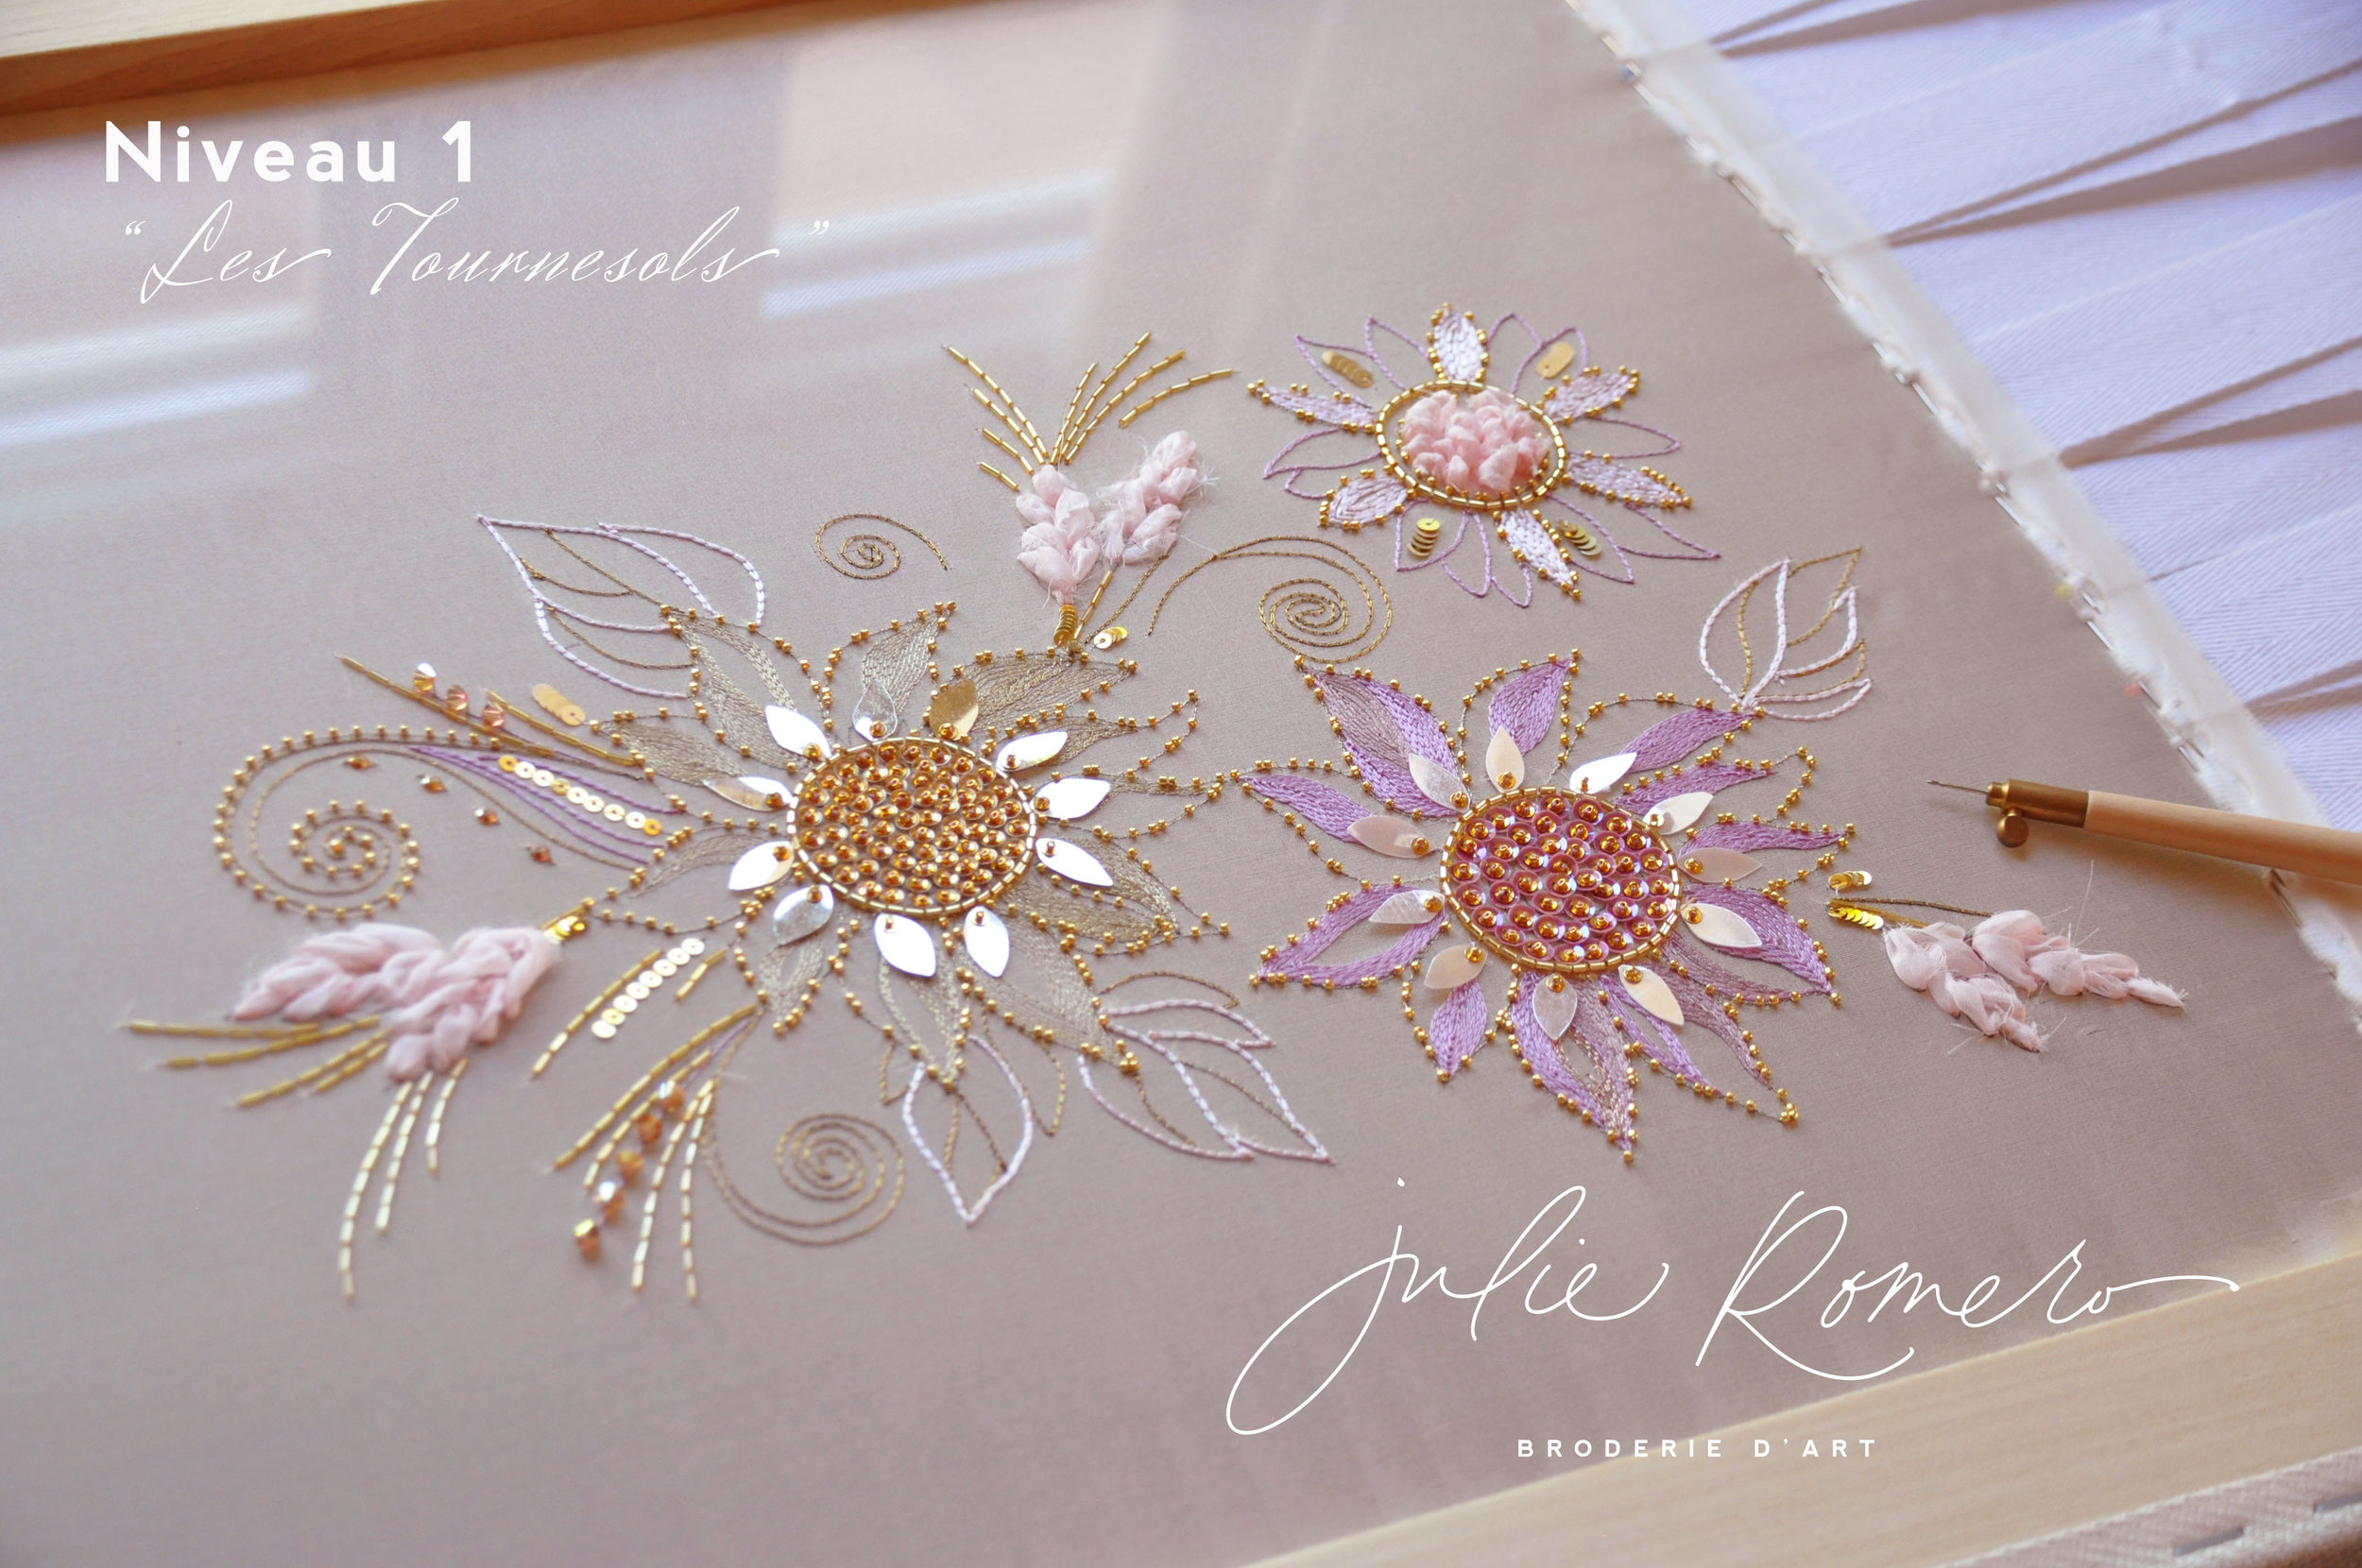 - Broderie haute couture